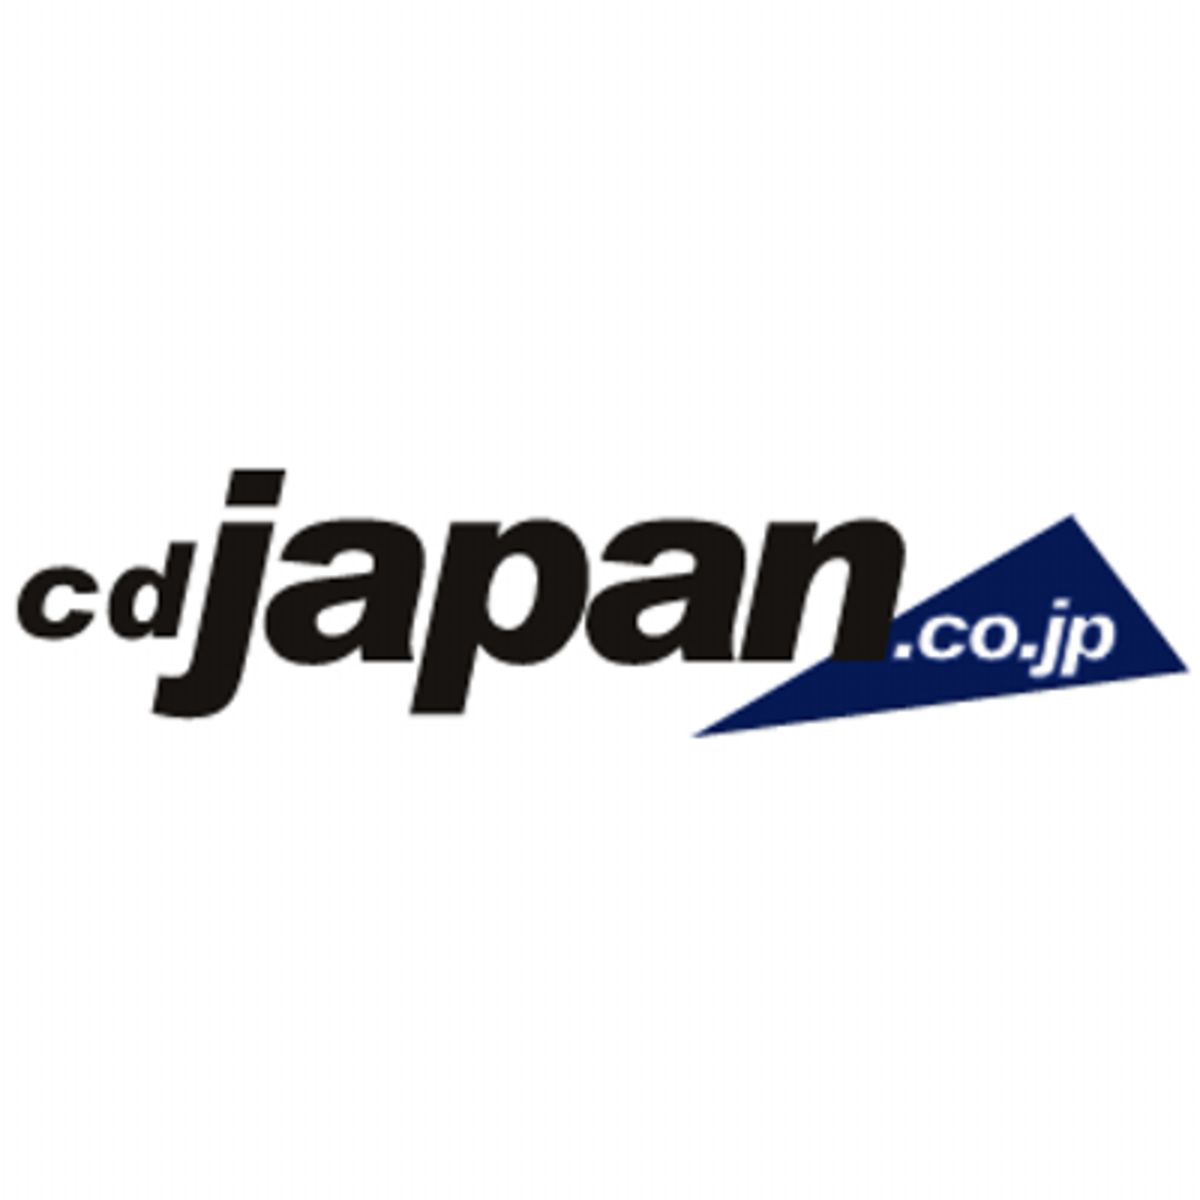 Website Review: CDJapan.co.jp